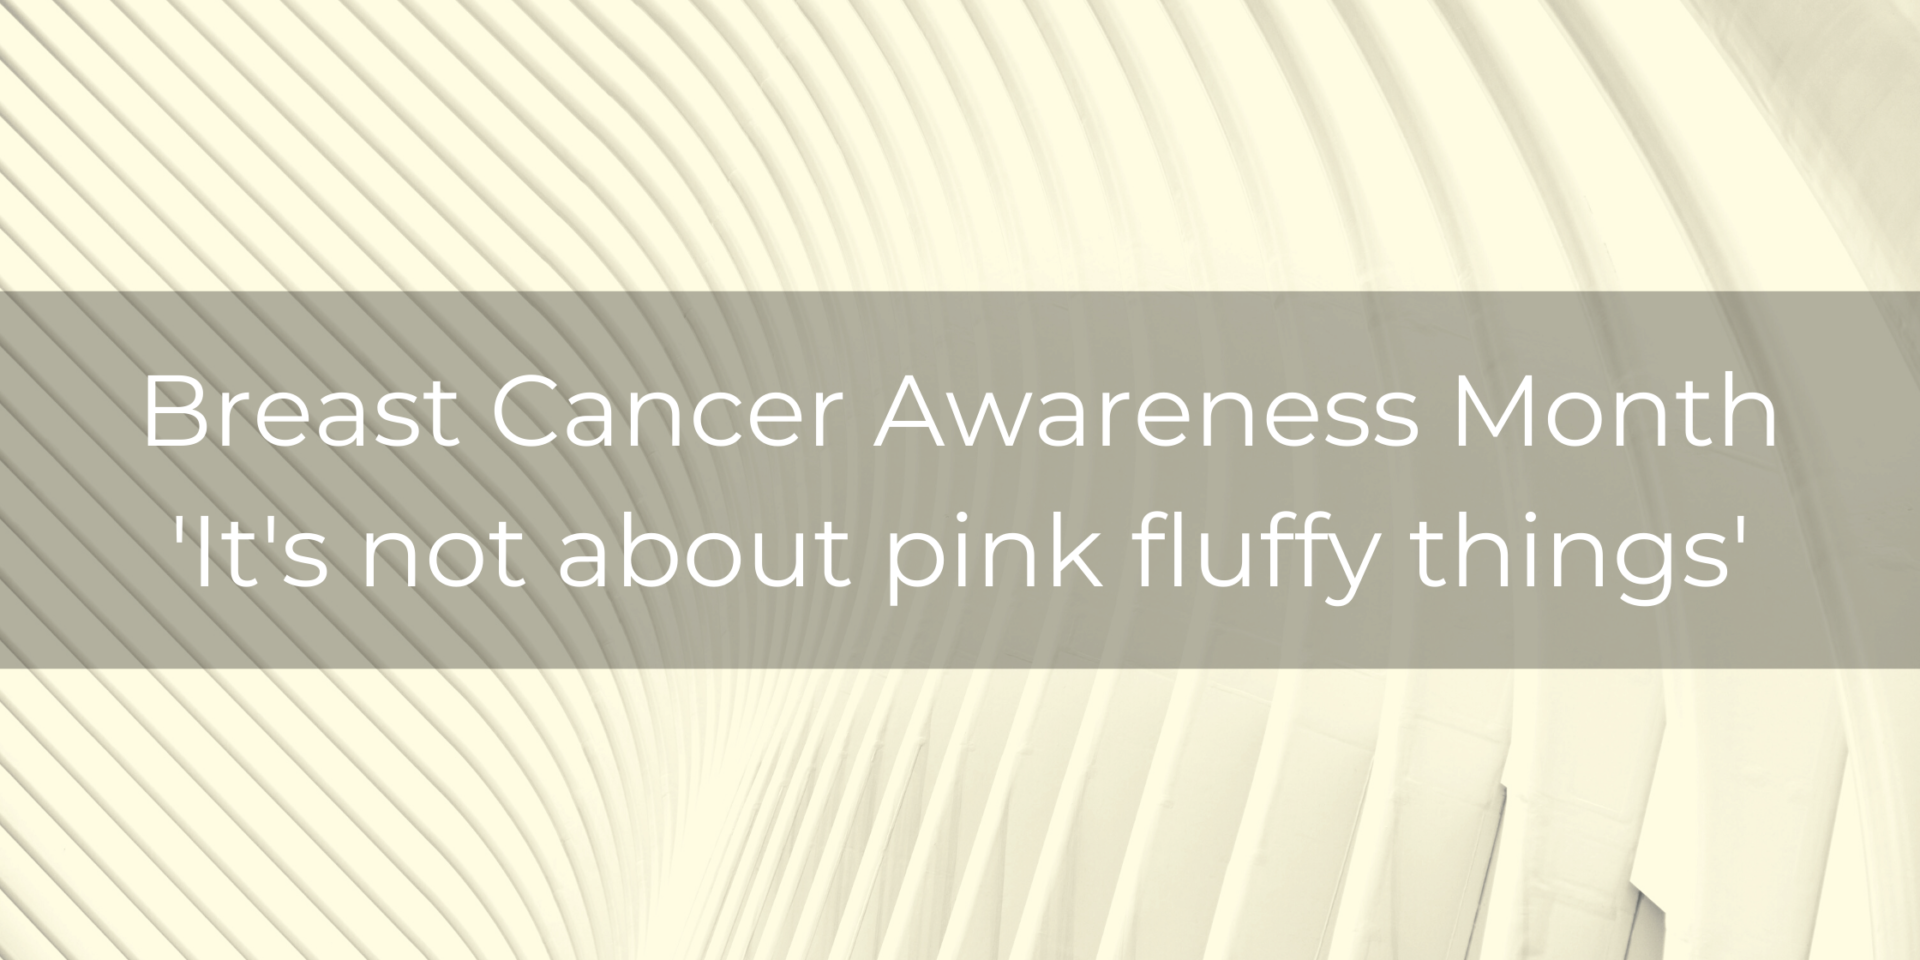 Breast Cancer Awareness Month Its not about pink fluffy things